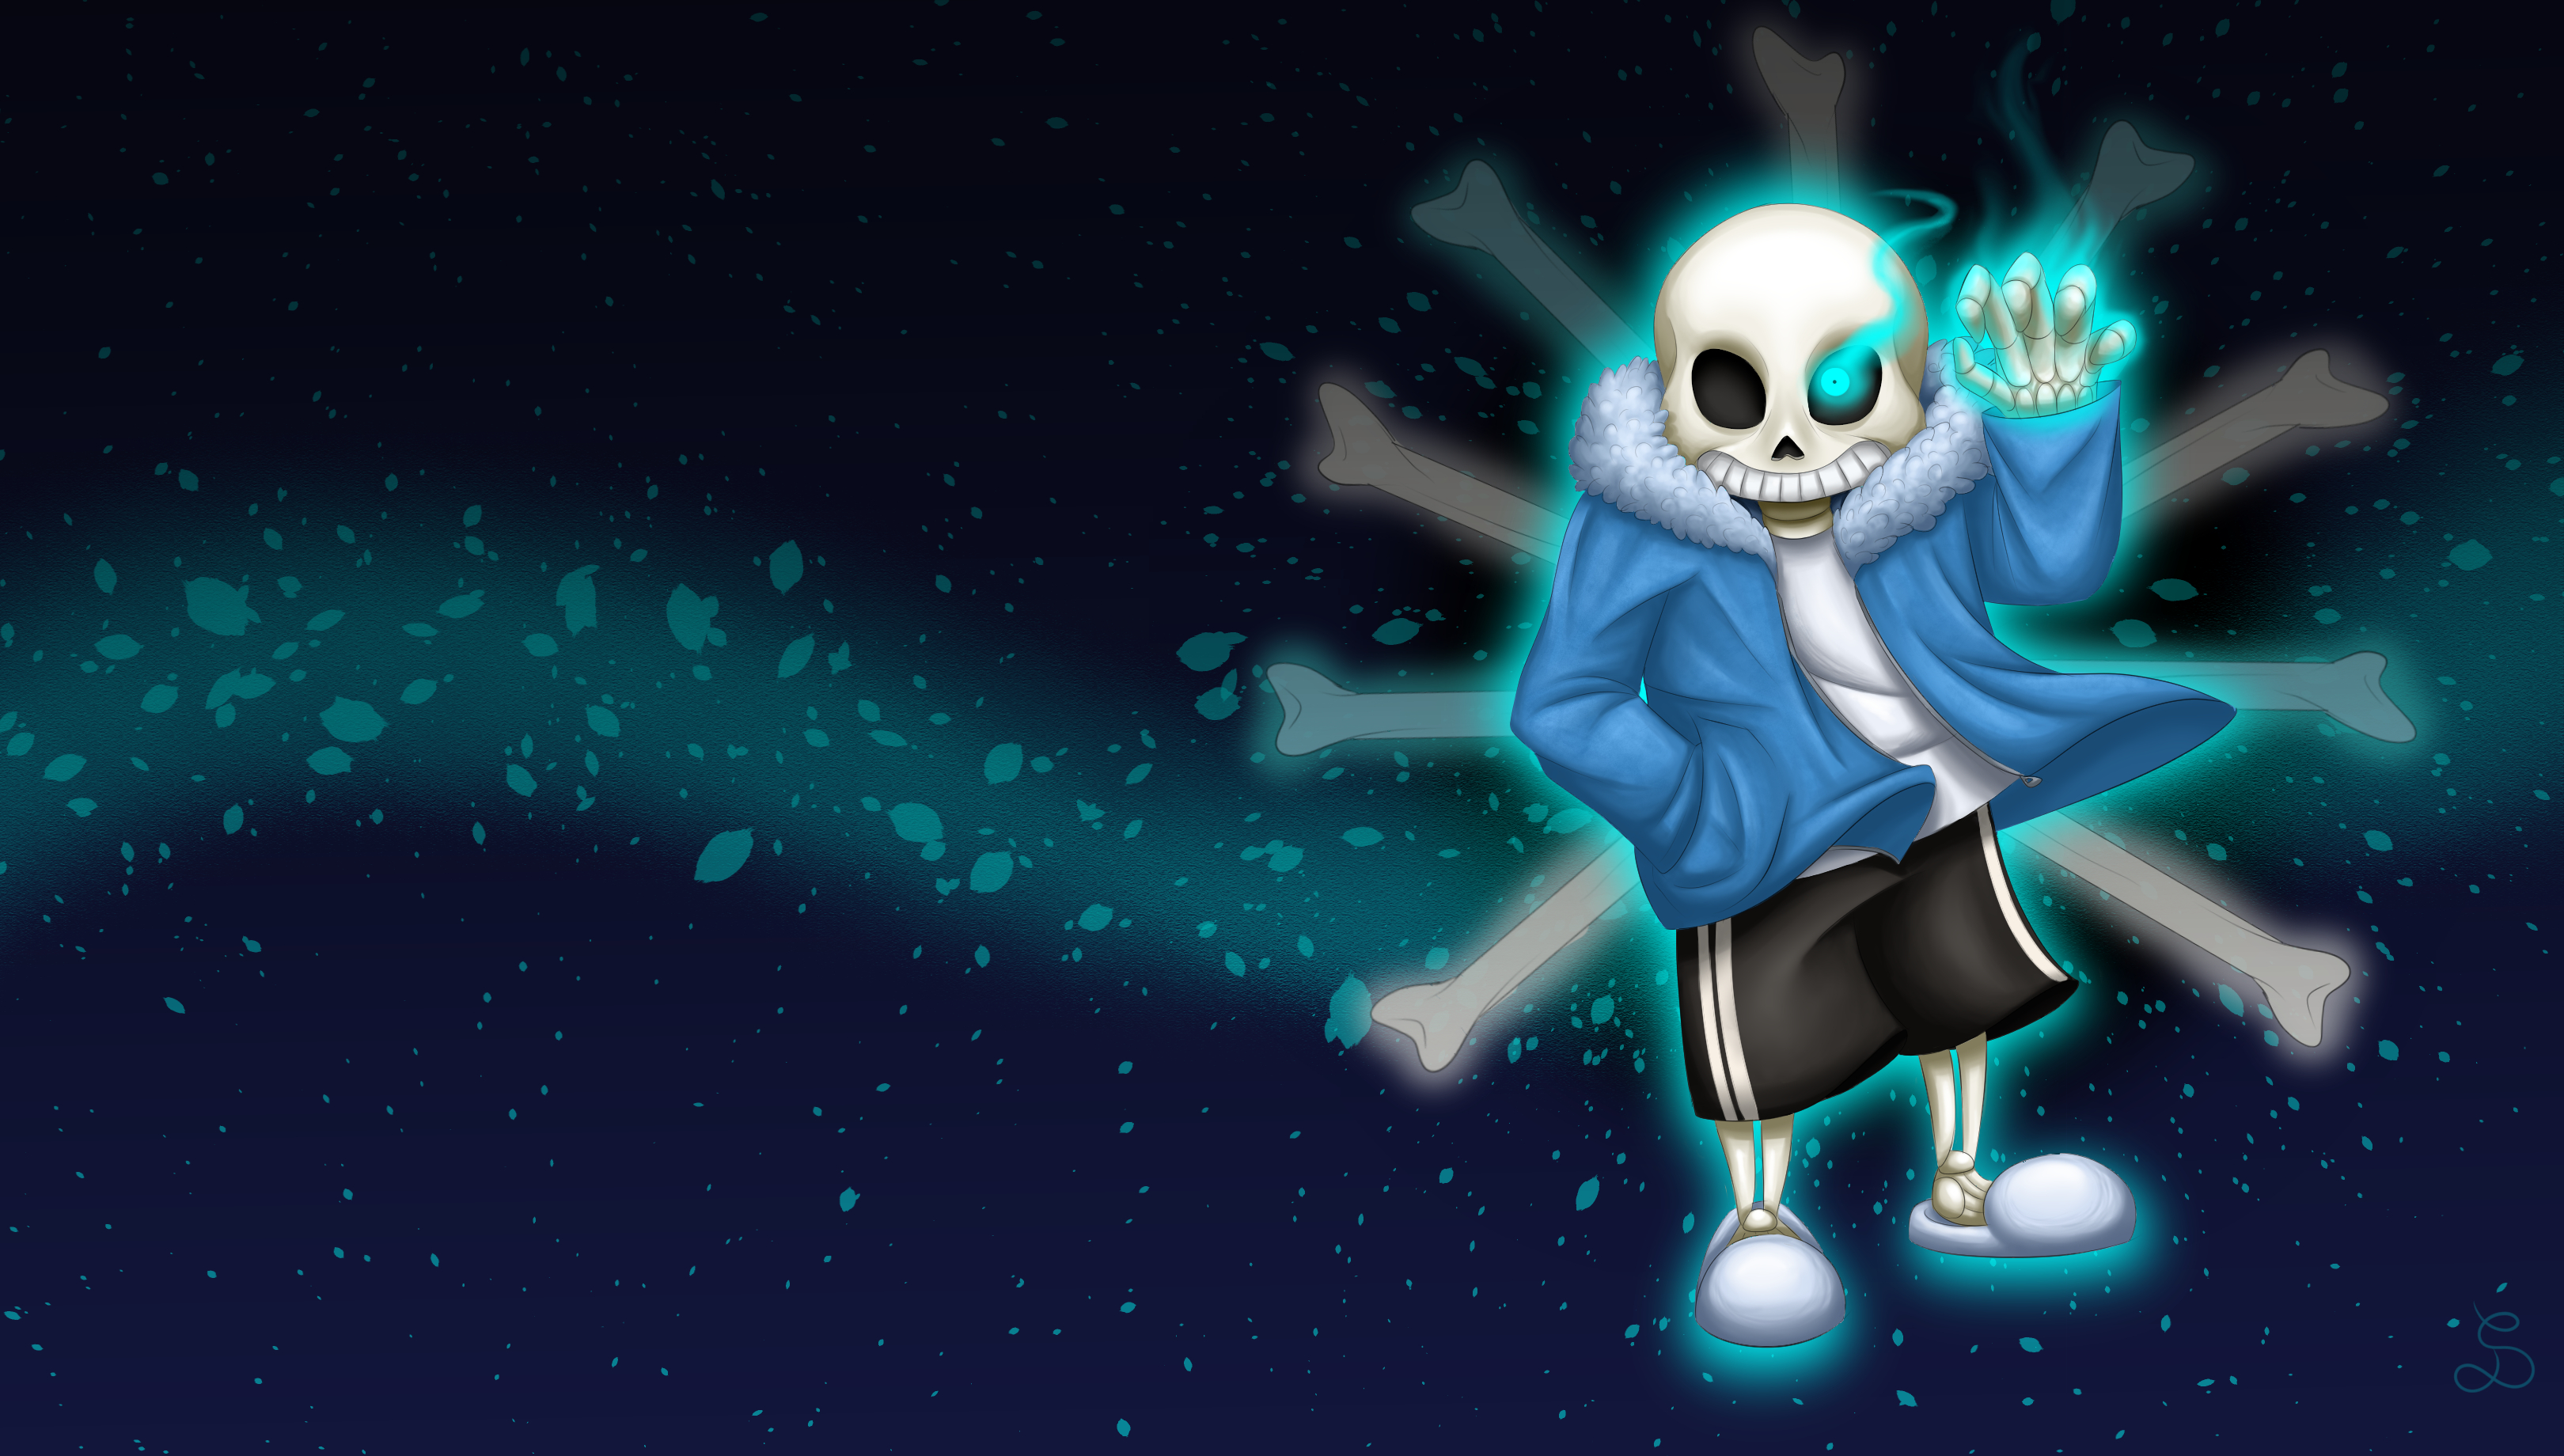 Undertale Wallpaper Sans by SarOkami 3240x1840